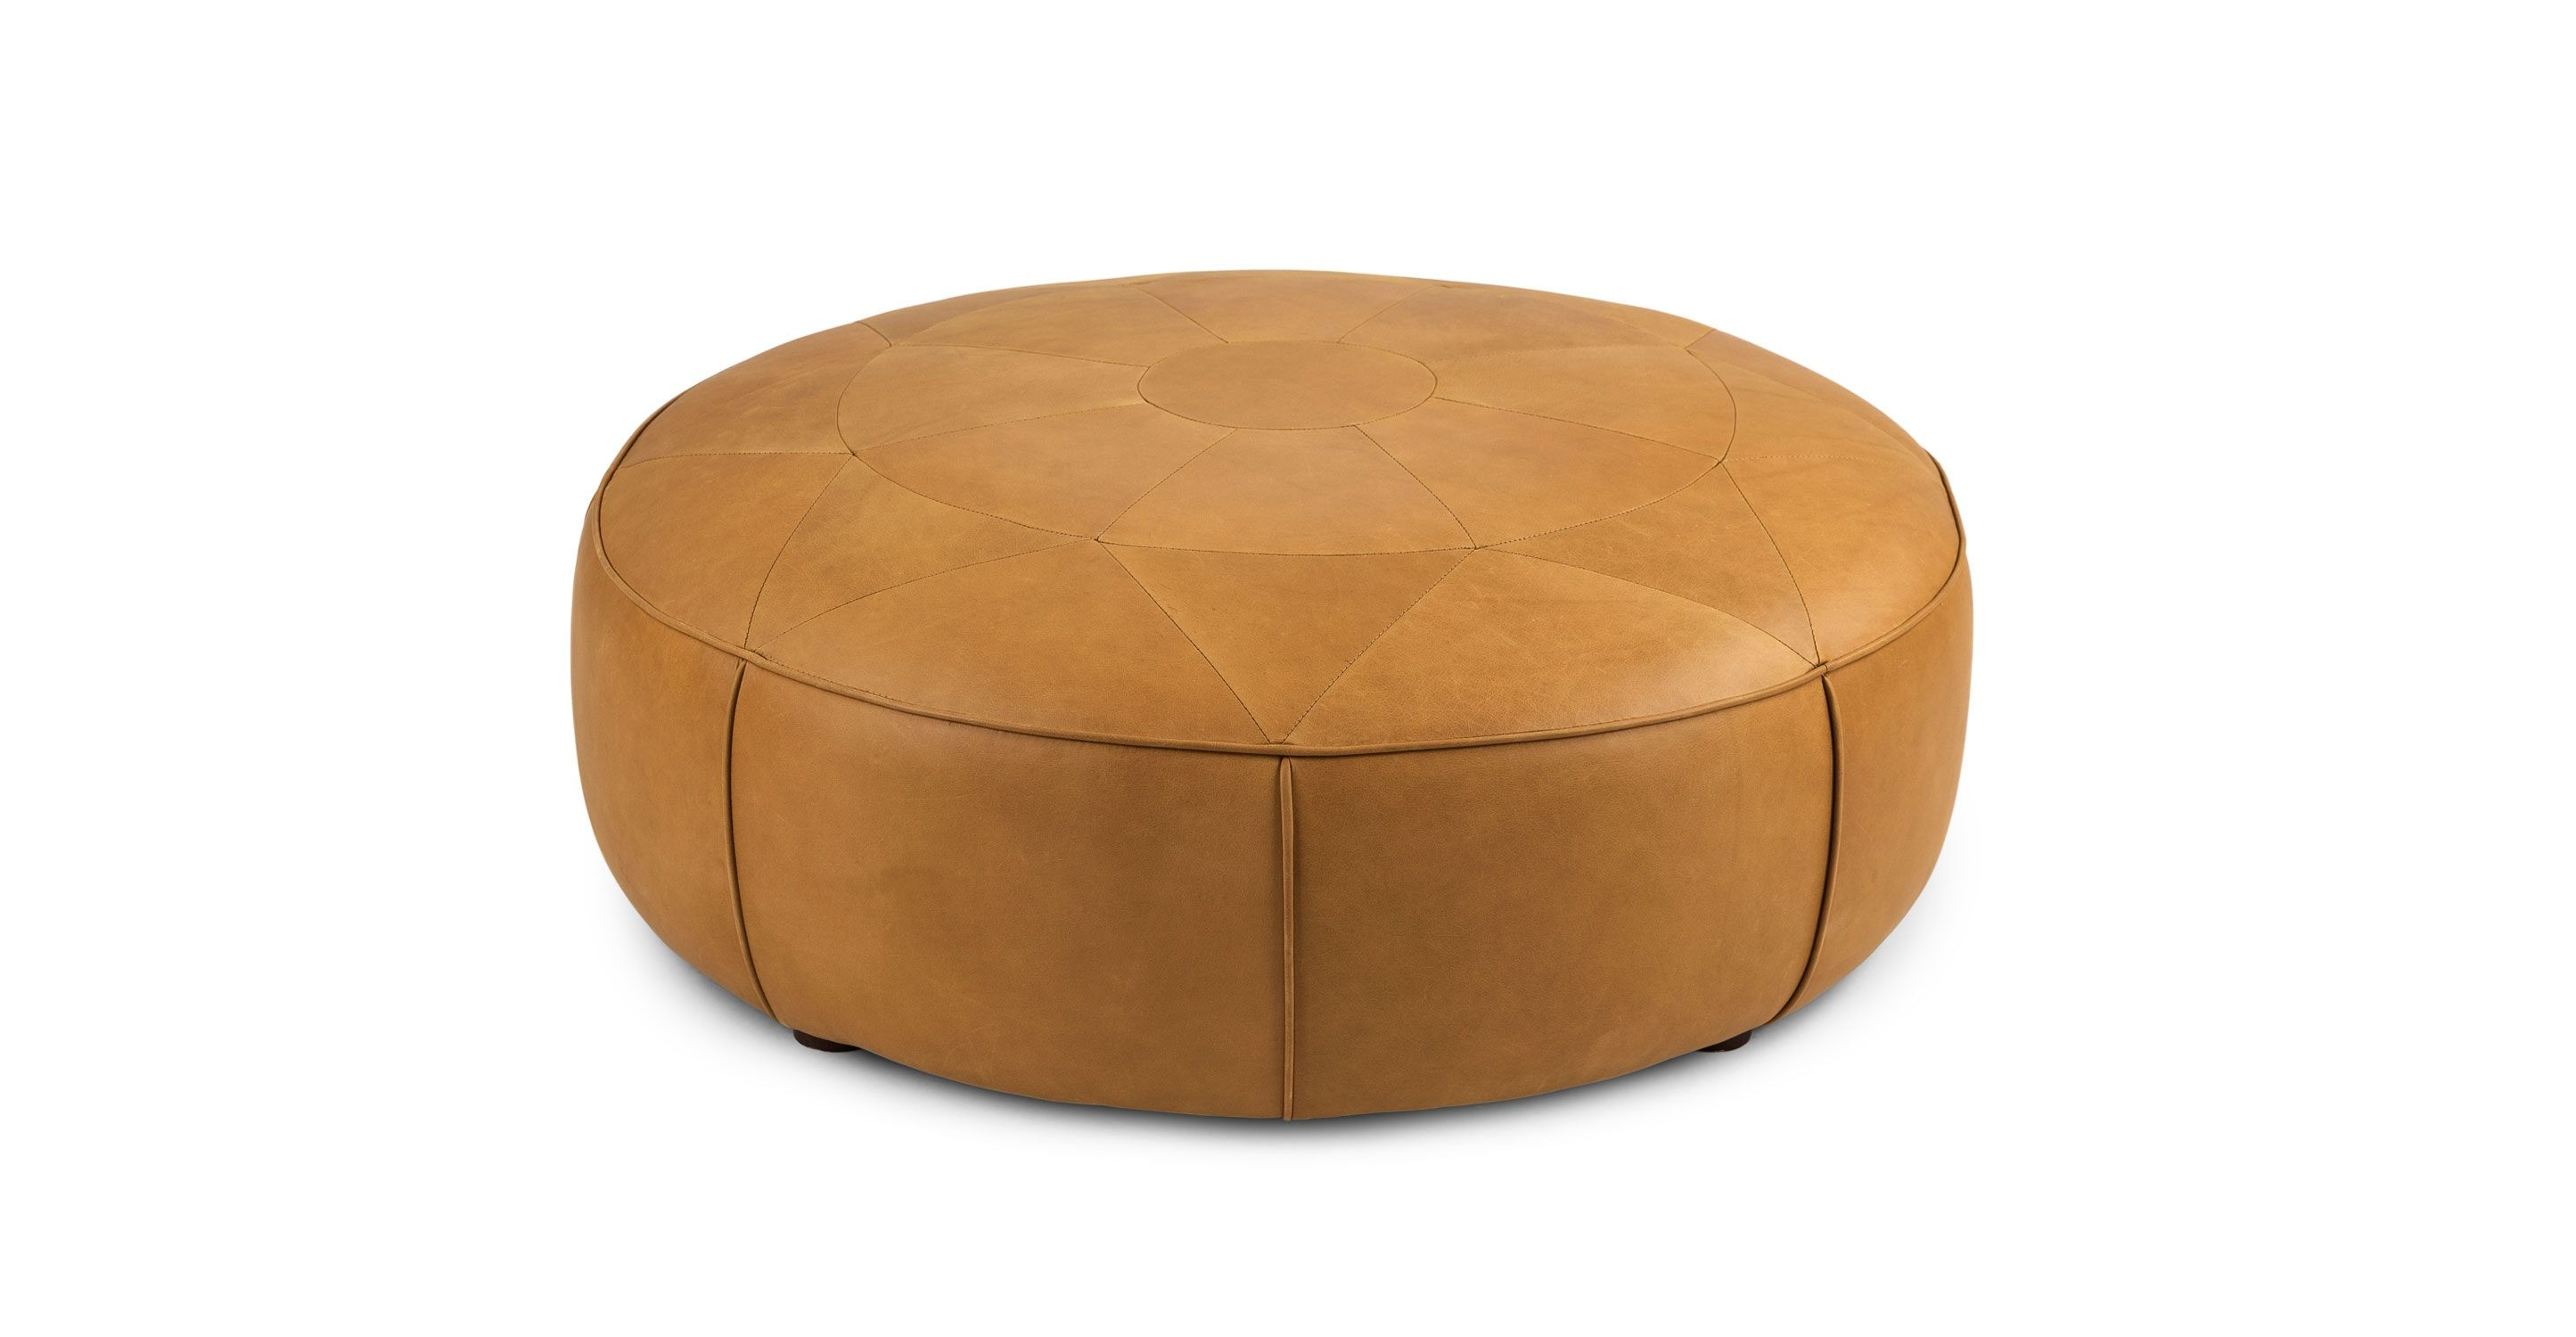 tan leather tufted ottoman round article orbis modern furniture